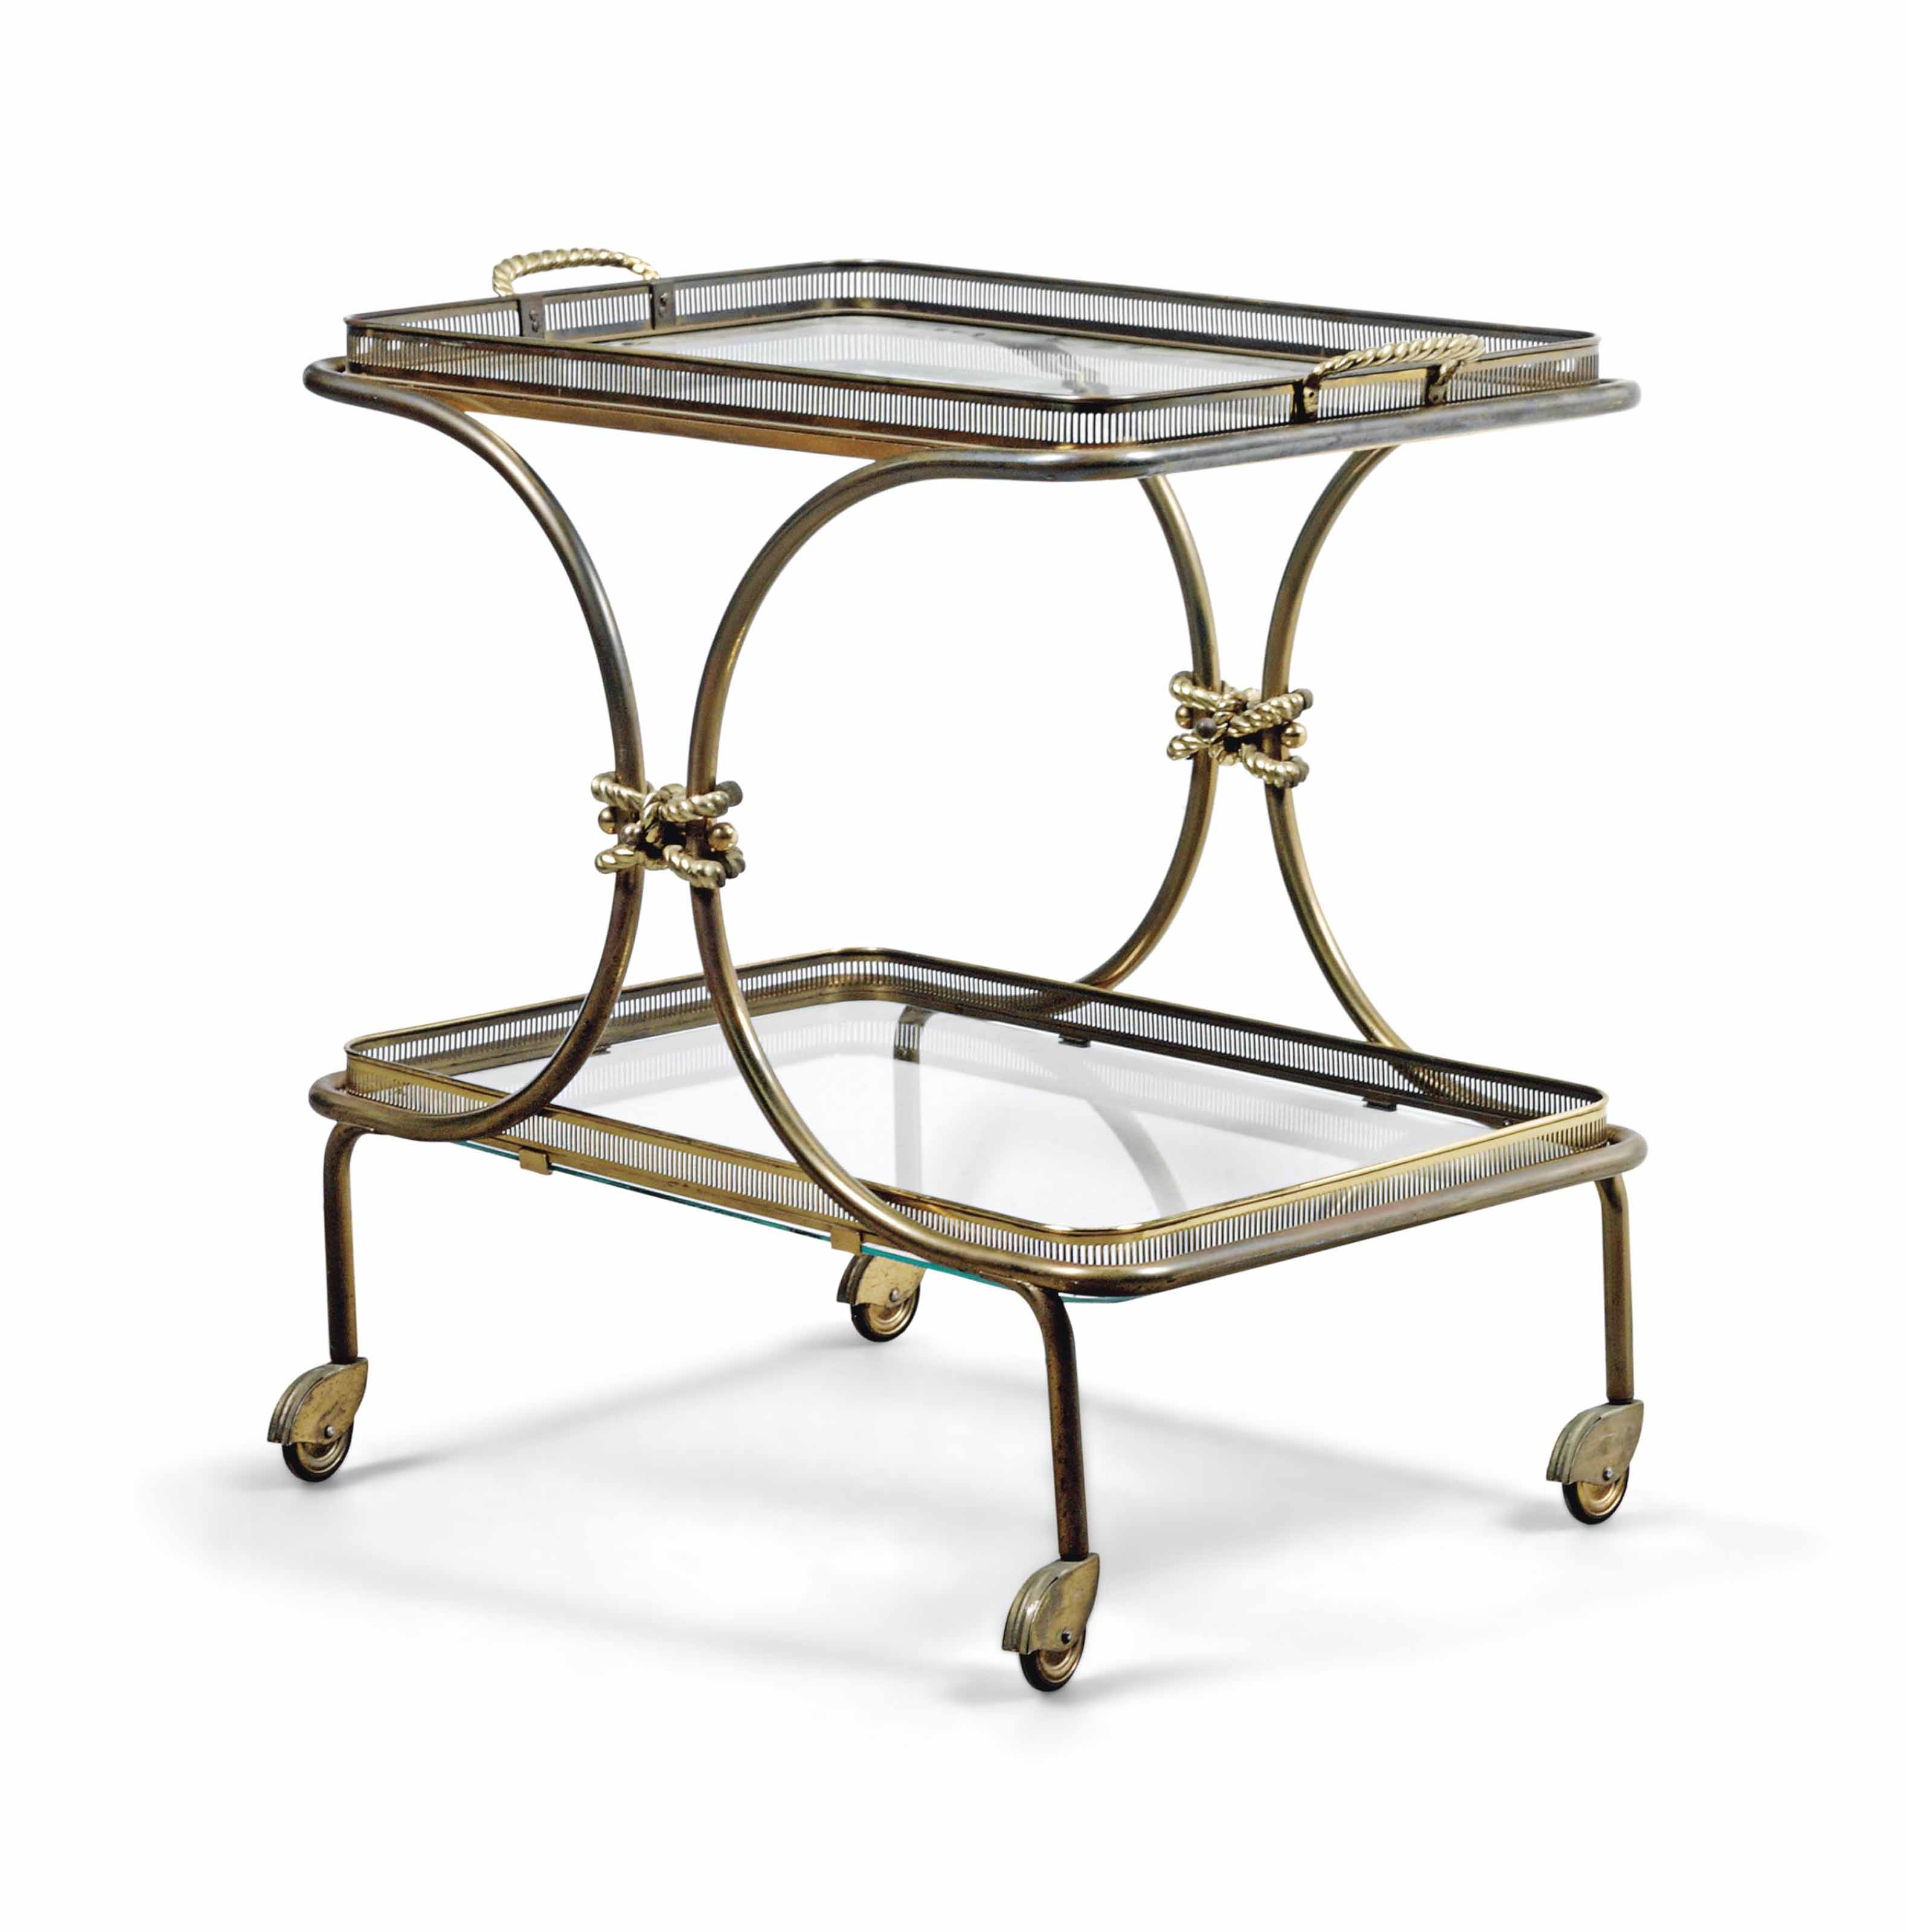 A FRENCH BRASS, GILT-METAL AND